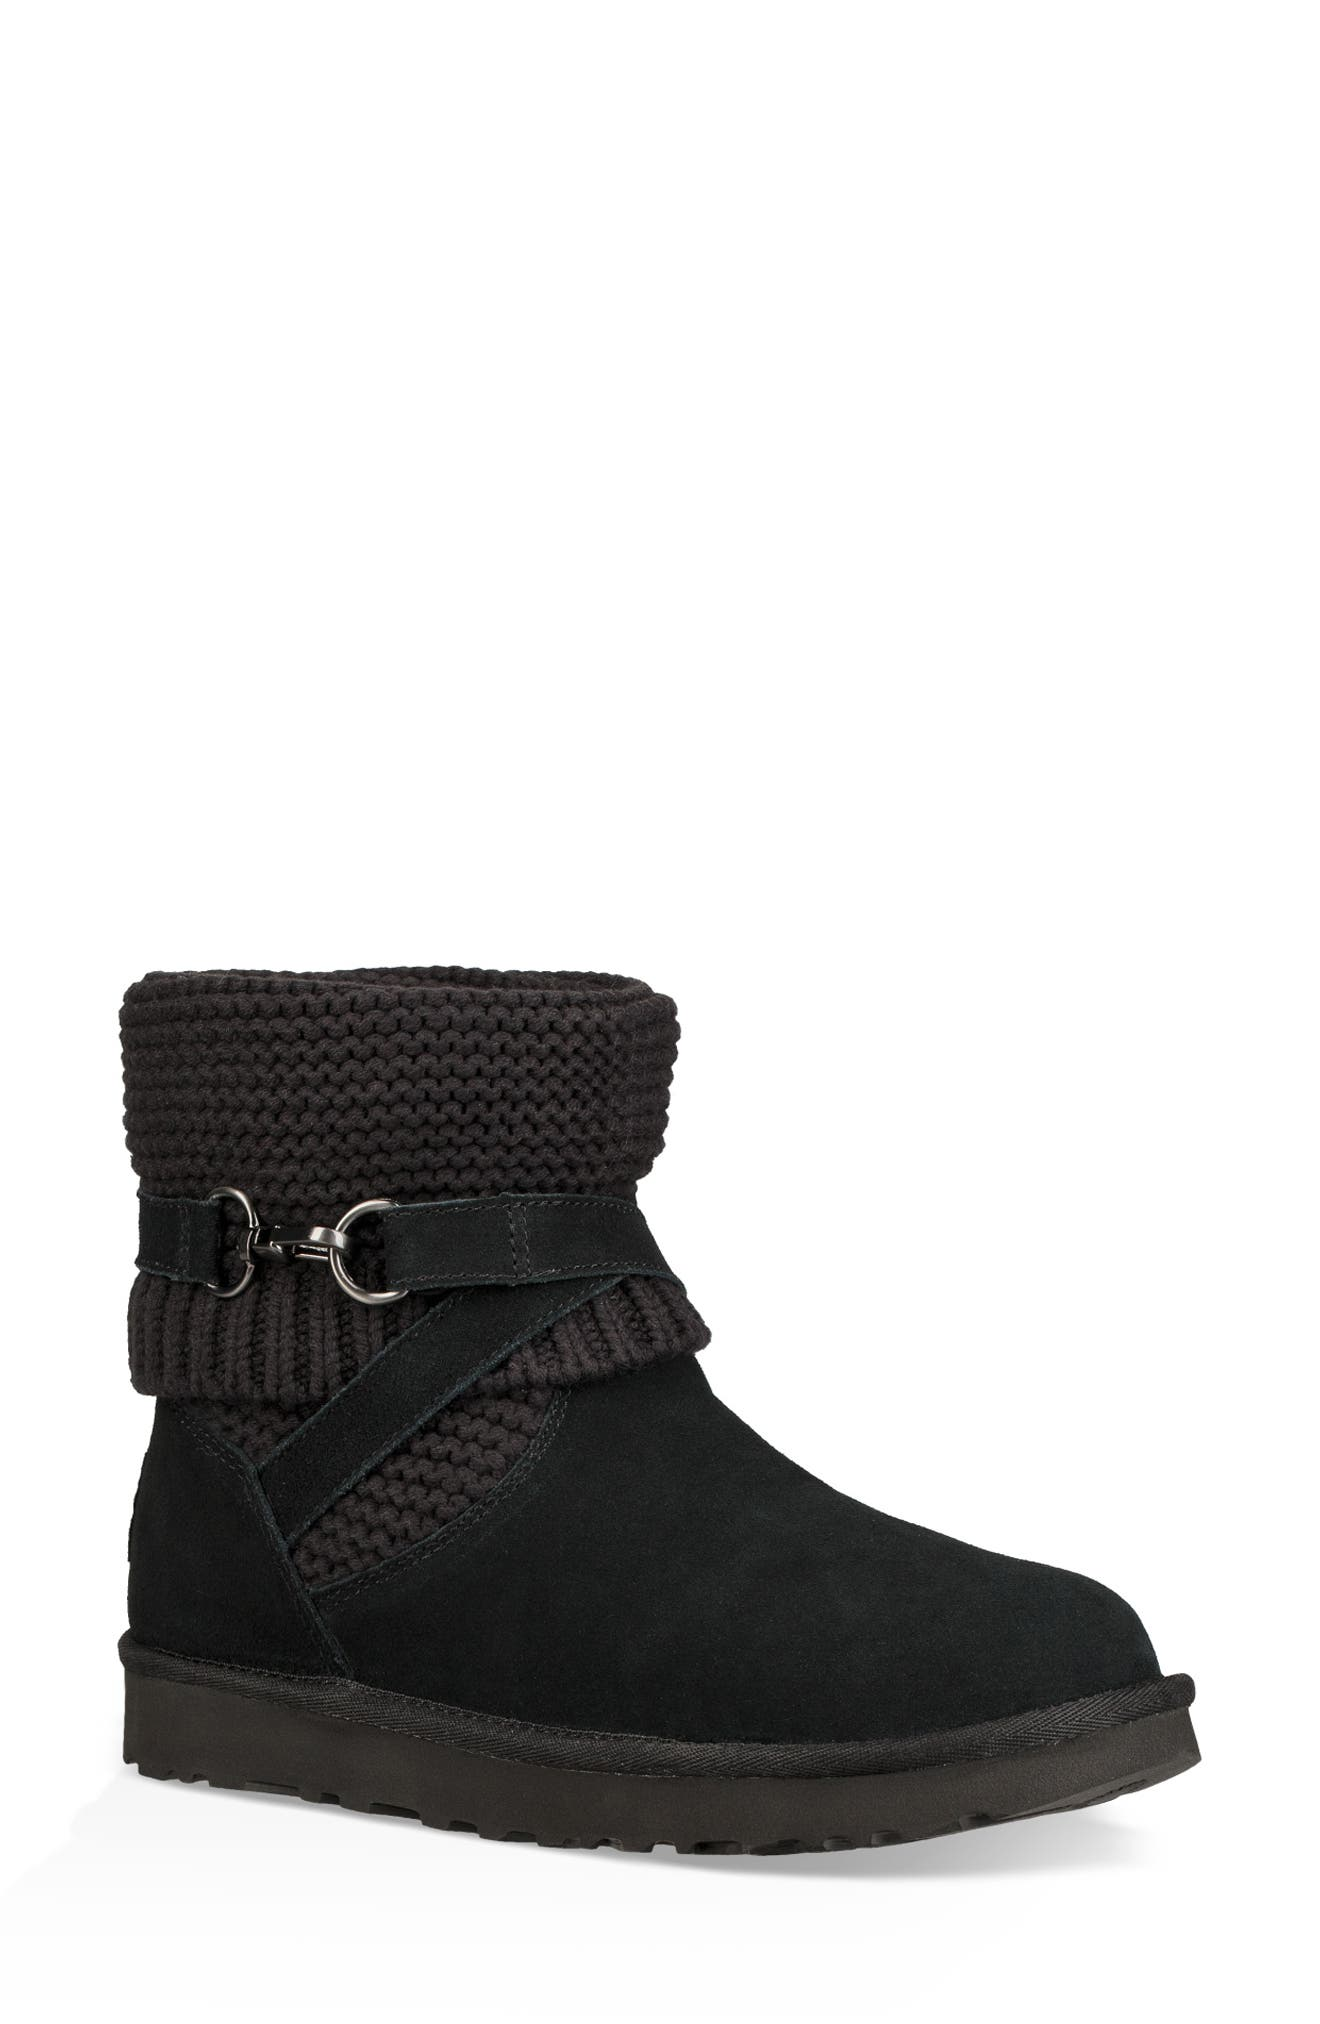 UGGpure<sup>™</sup> Strappy Purl Knit Bootie,                             Alternate thumbnail 2, color,                             BLACK SUEDE